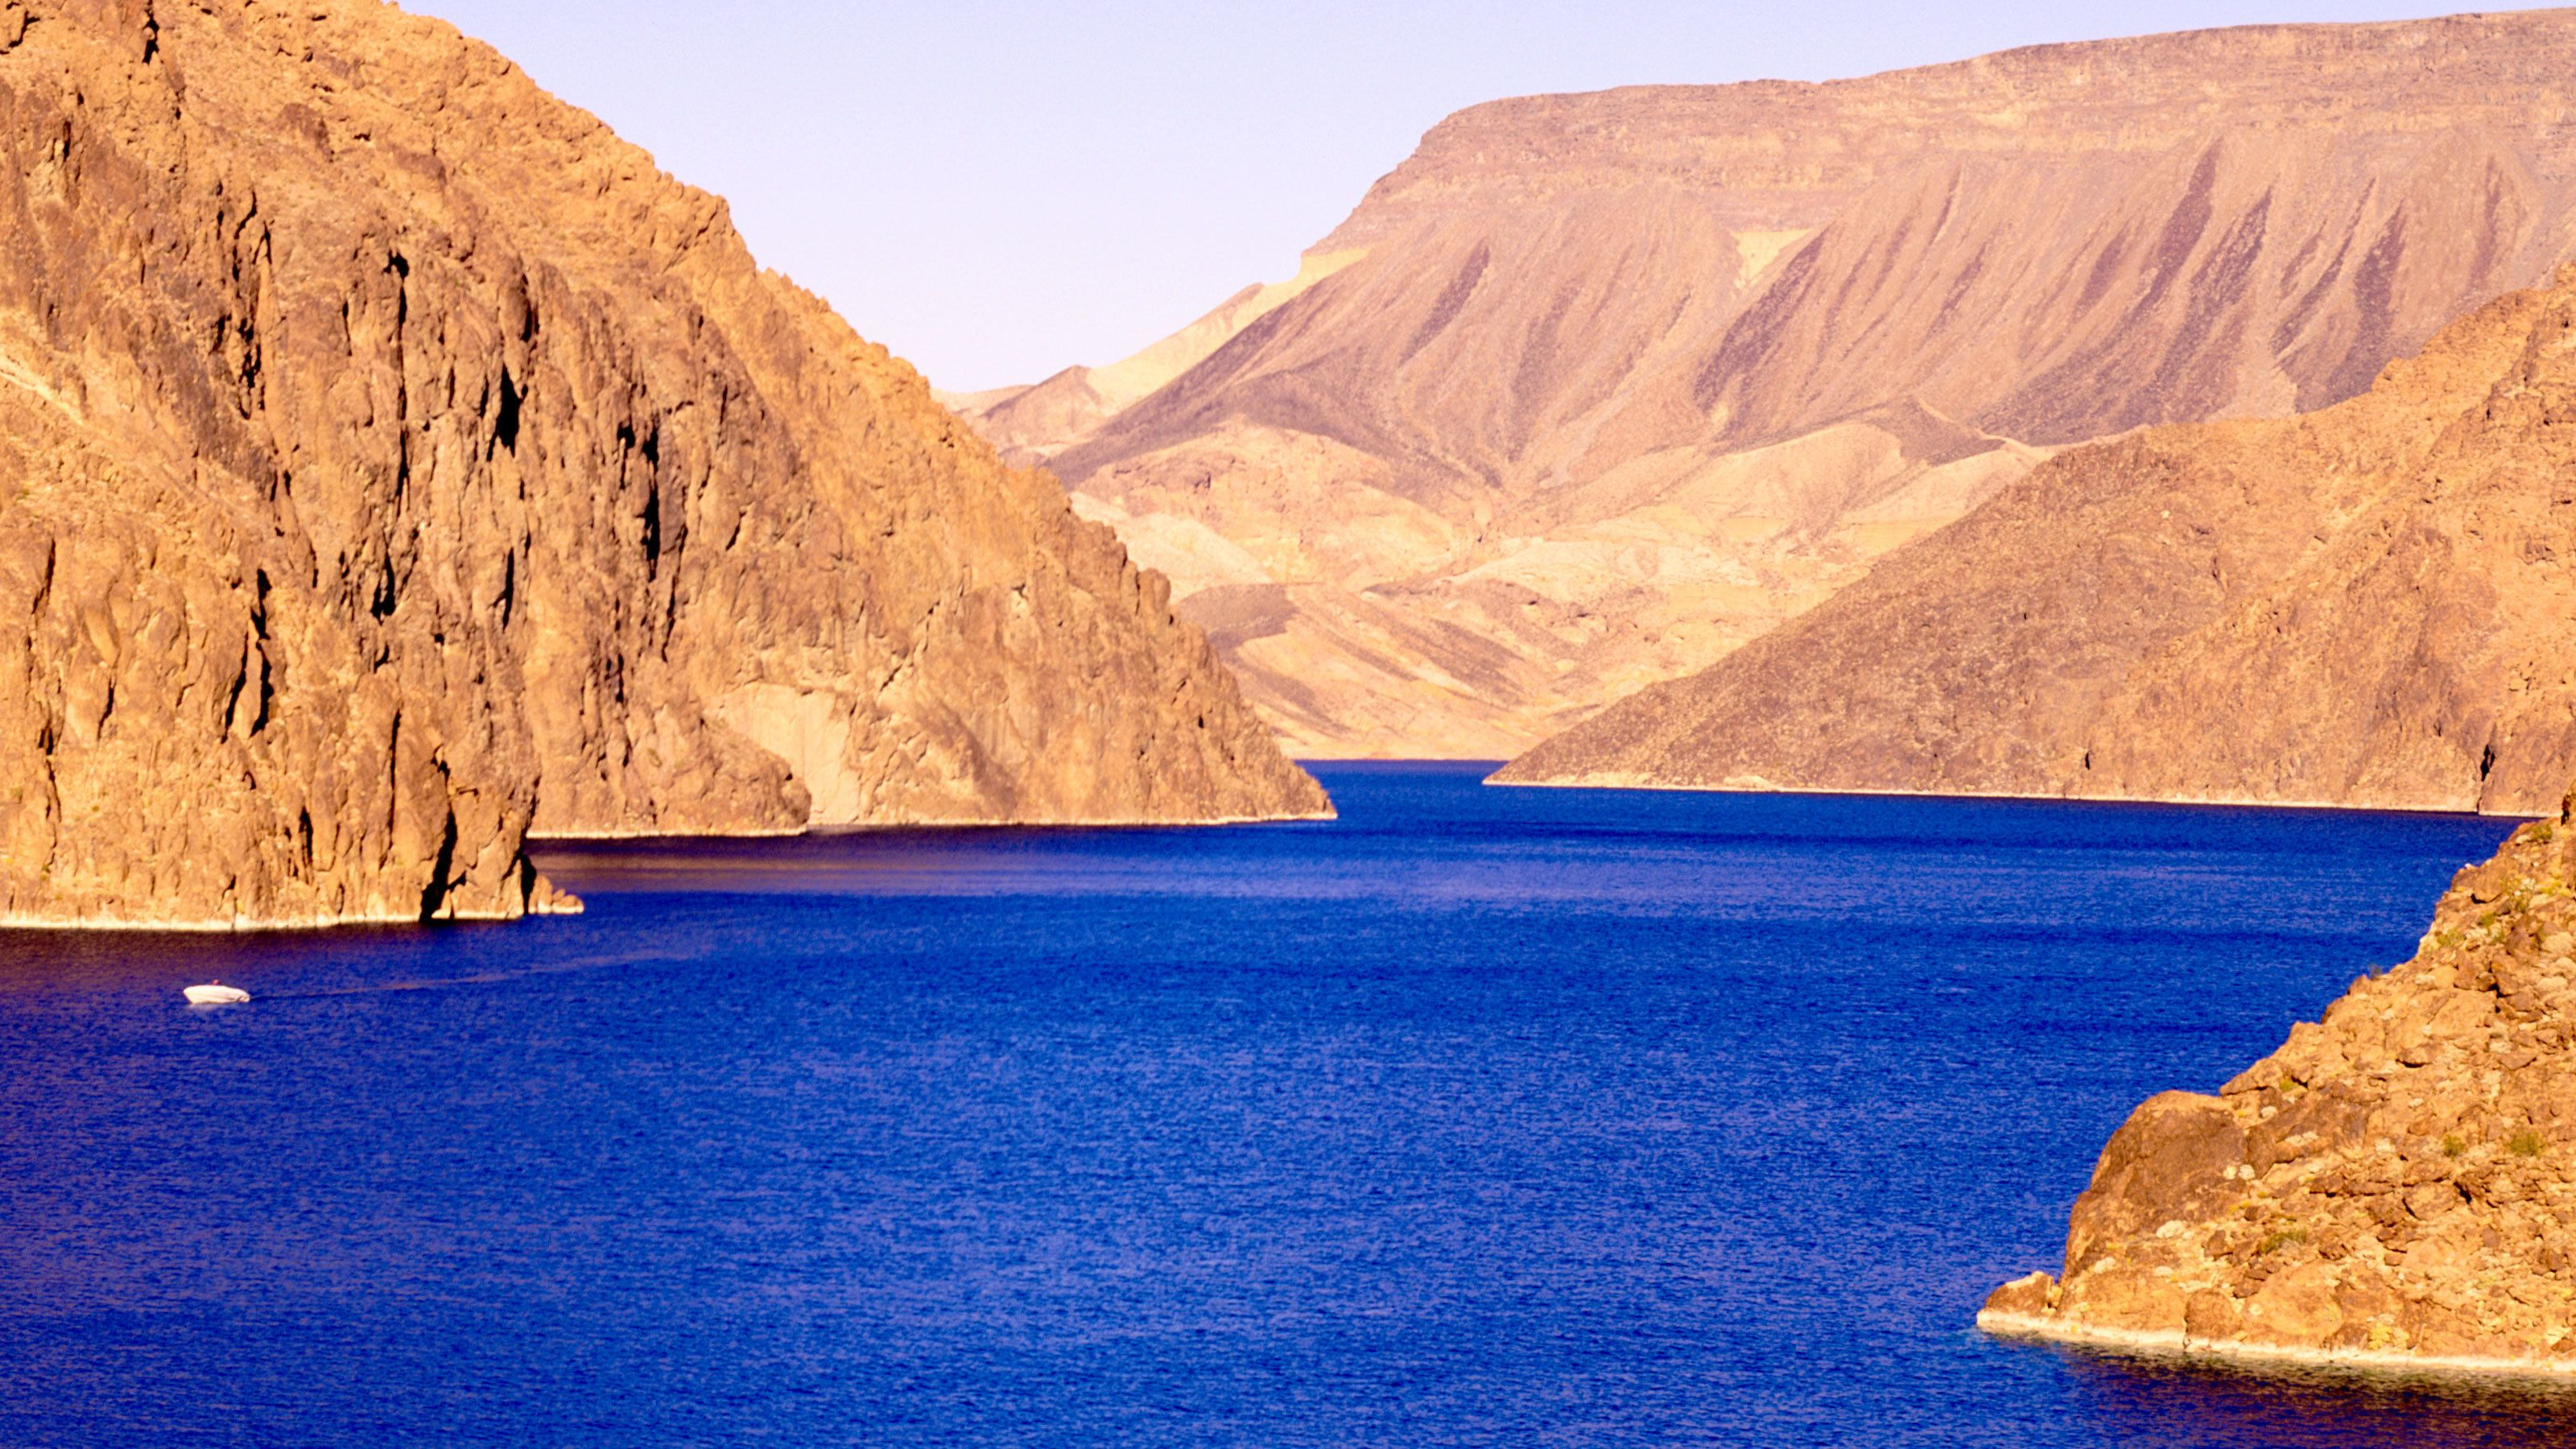 View of Colorado on the Colorado River Scenic Float Trip